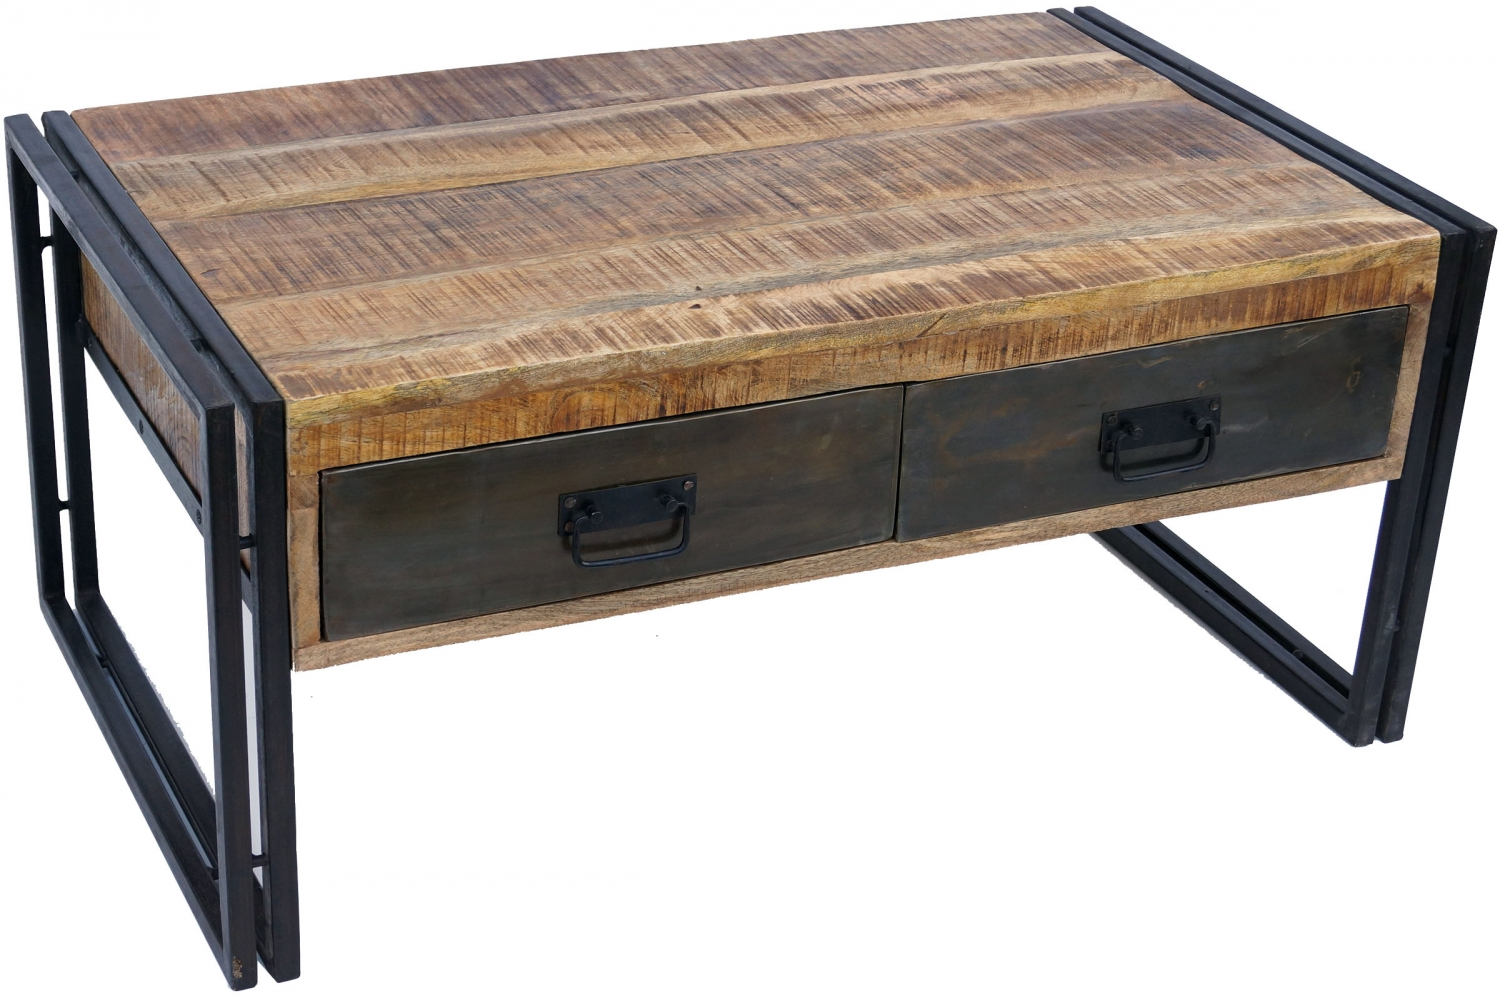 - Opium Tables, Coffee Table, Side Table, Coffee Table With Metal Legs -  Model 3 - 45x100x60 Cm